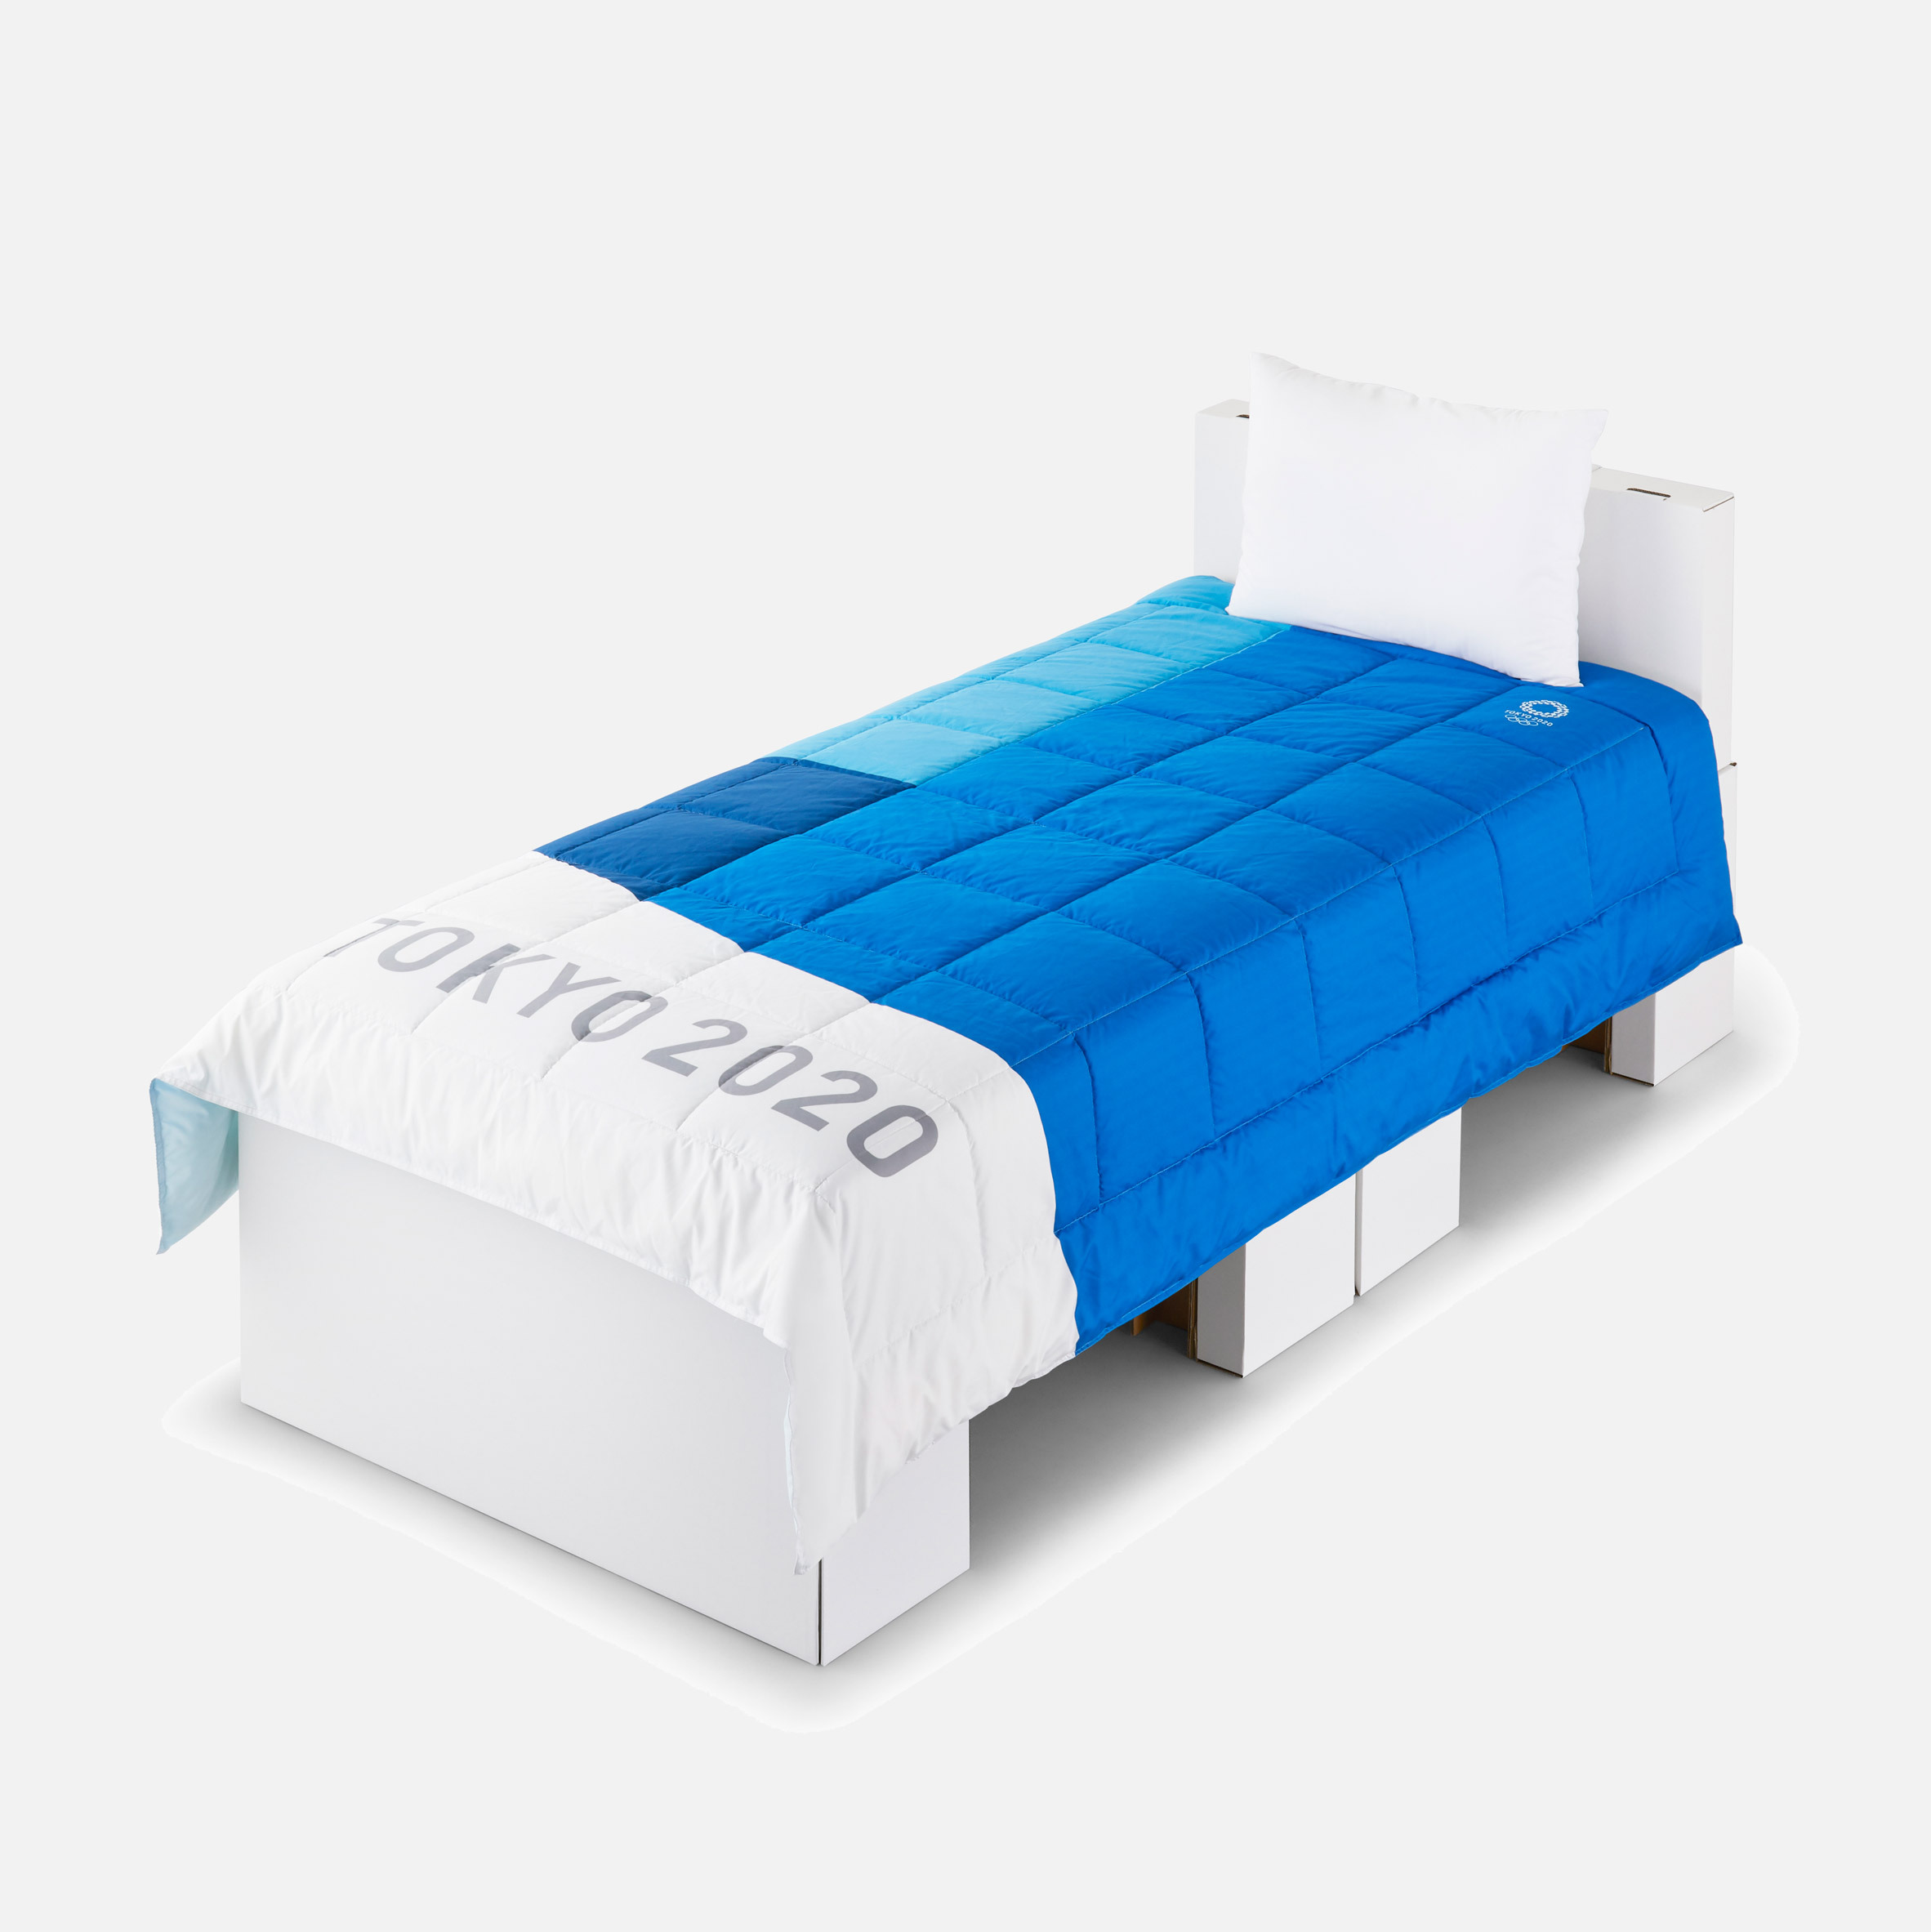 A blue and white Tokyo 2020 Olympic bed and mattress